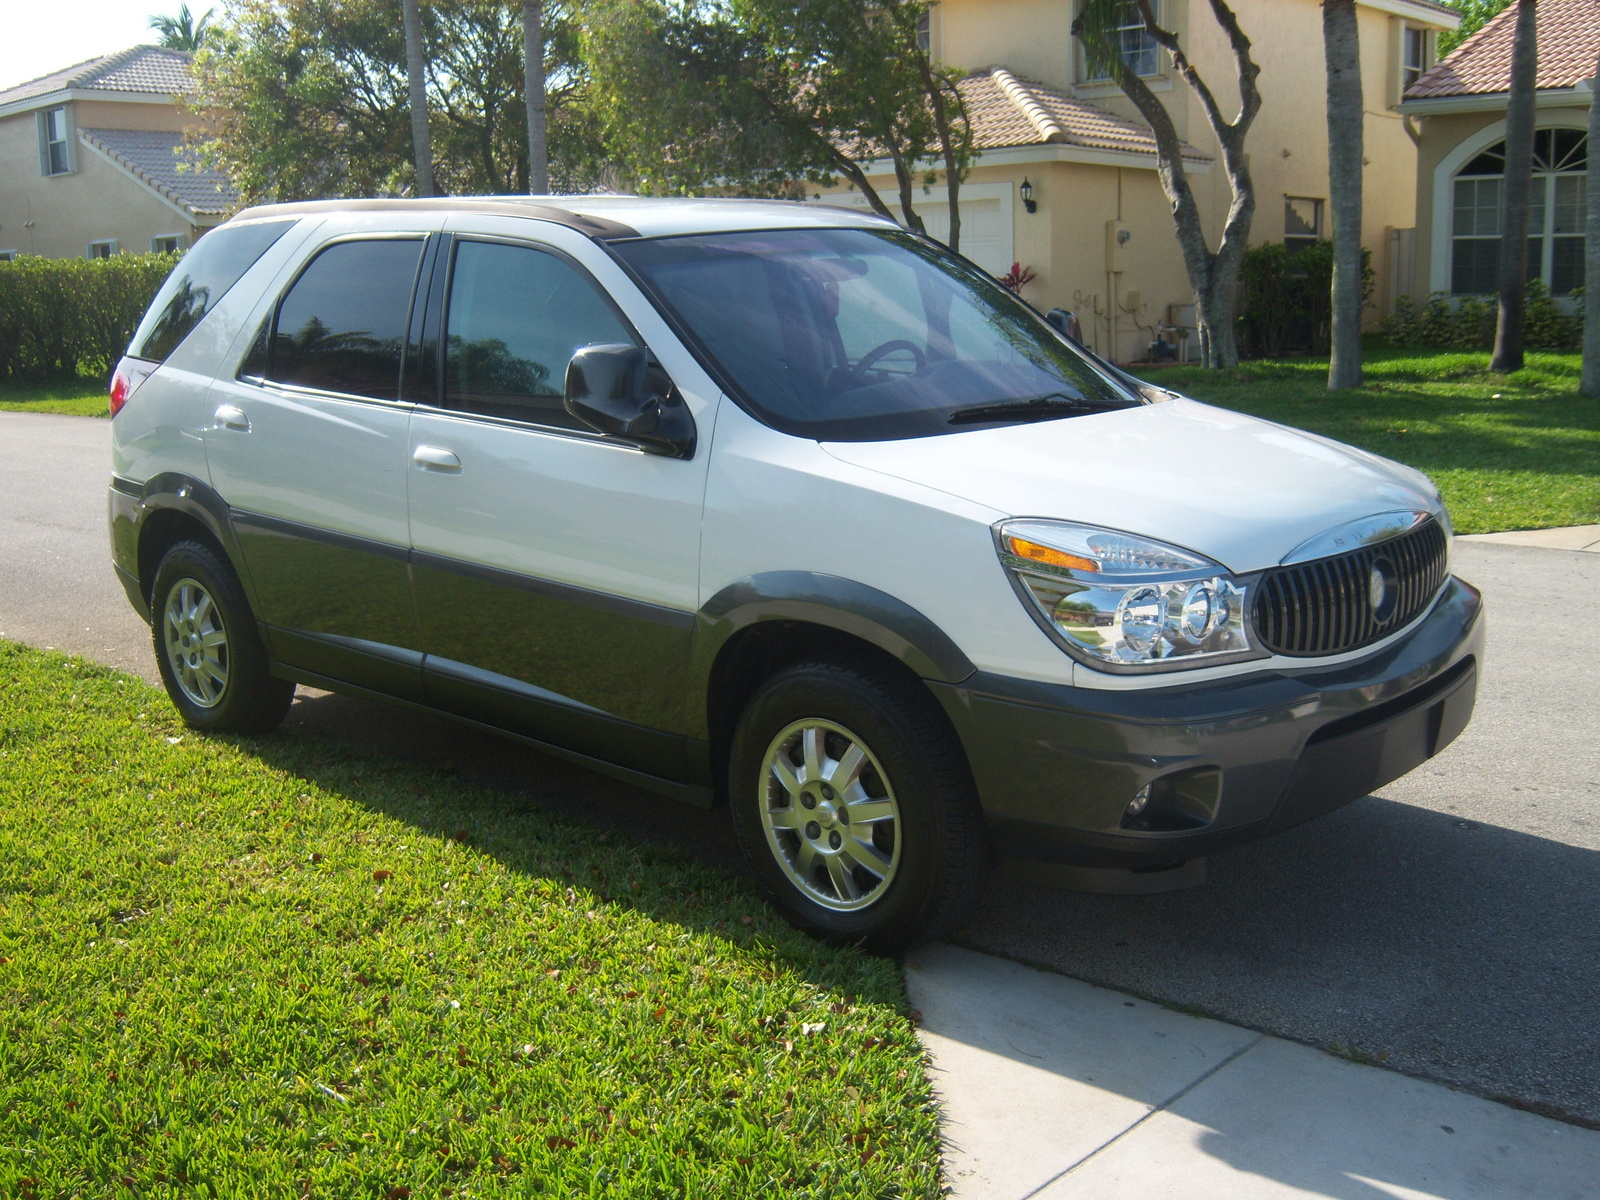 2004 buick rendezvous exterior pictures cargurus. Cars Review. Best American Auto & Cars Review